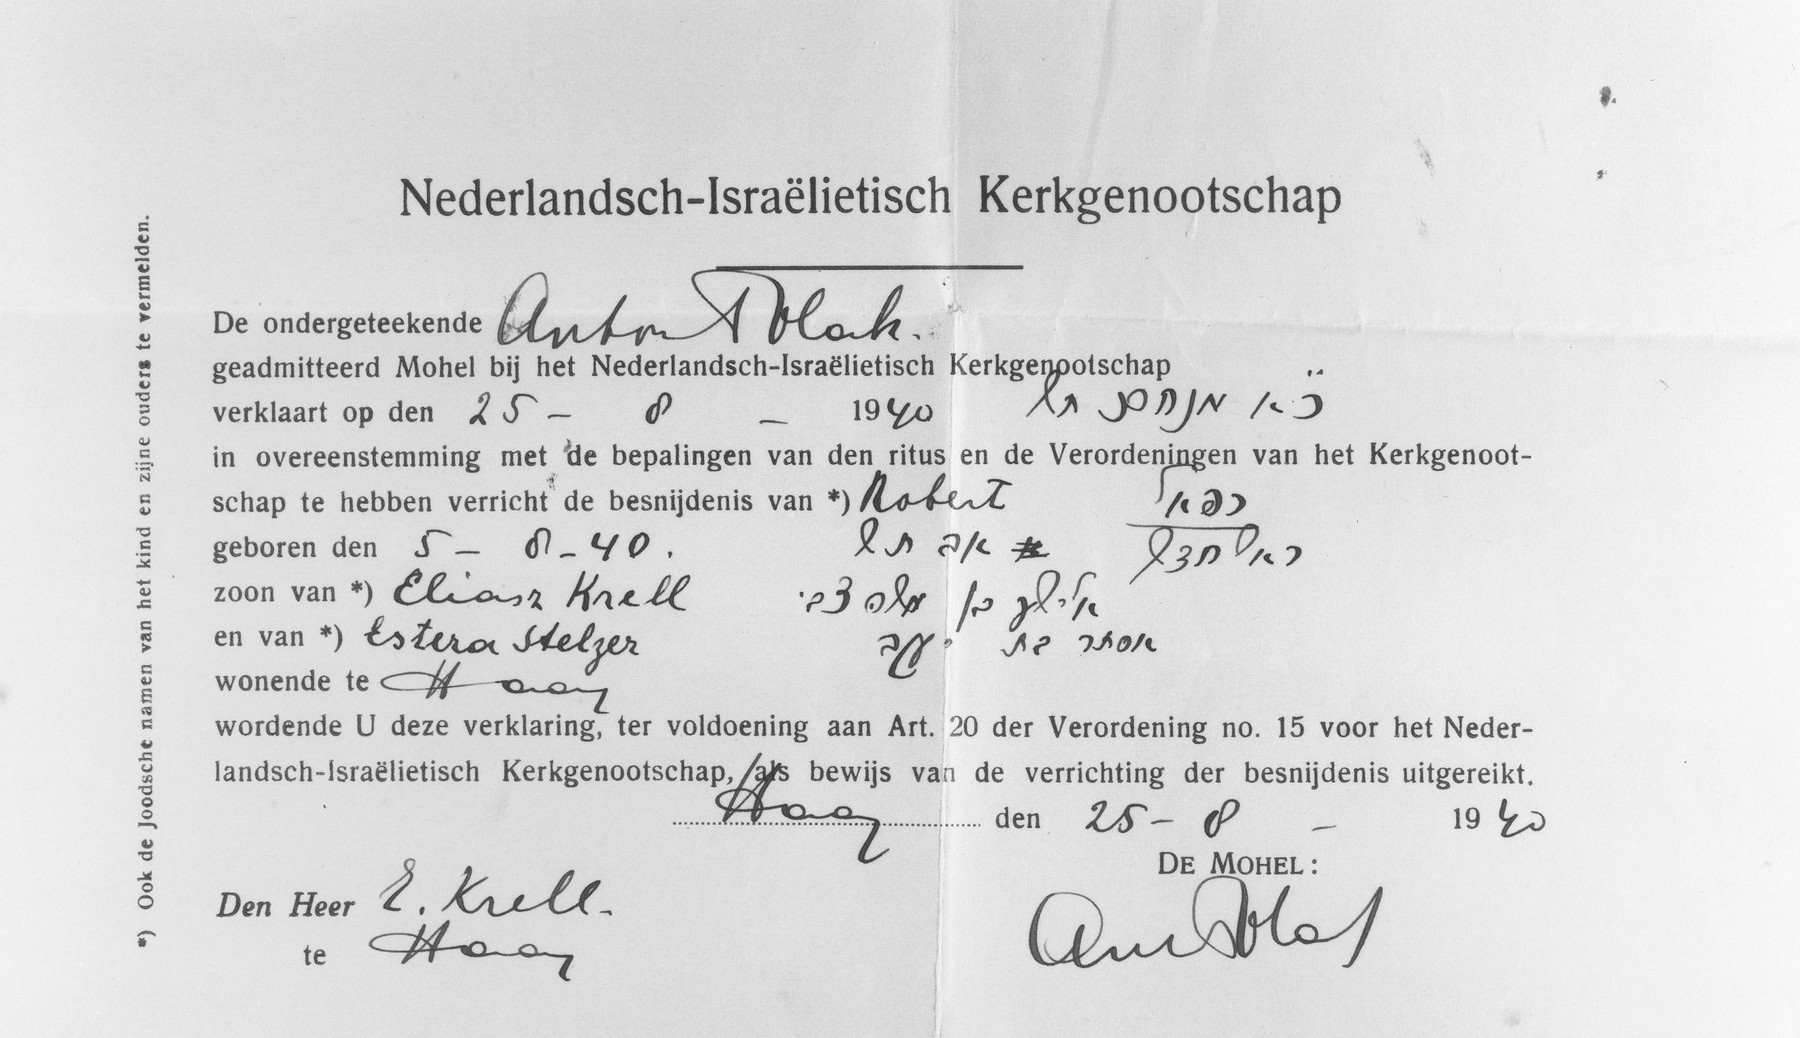 Circumcision certificate for Robert Krell signed by Anton Polak, mohel for the Jewish community in The Hague.